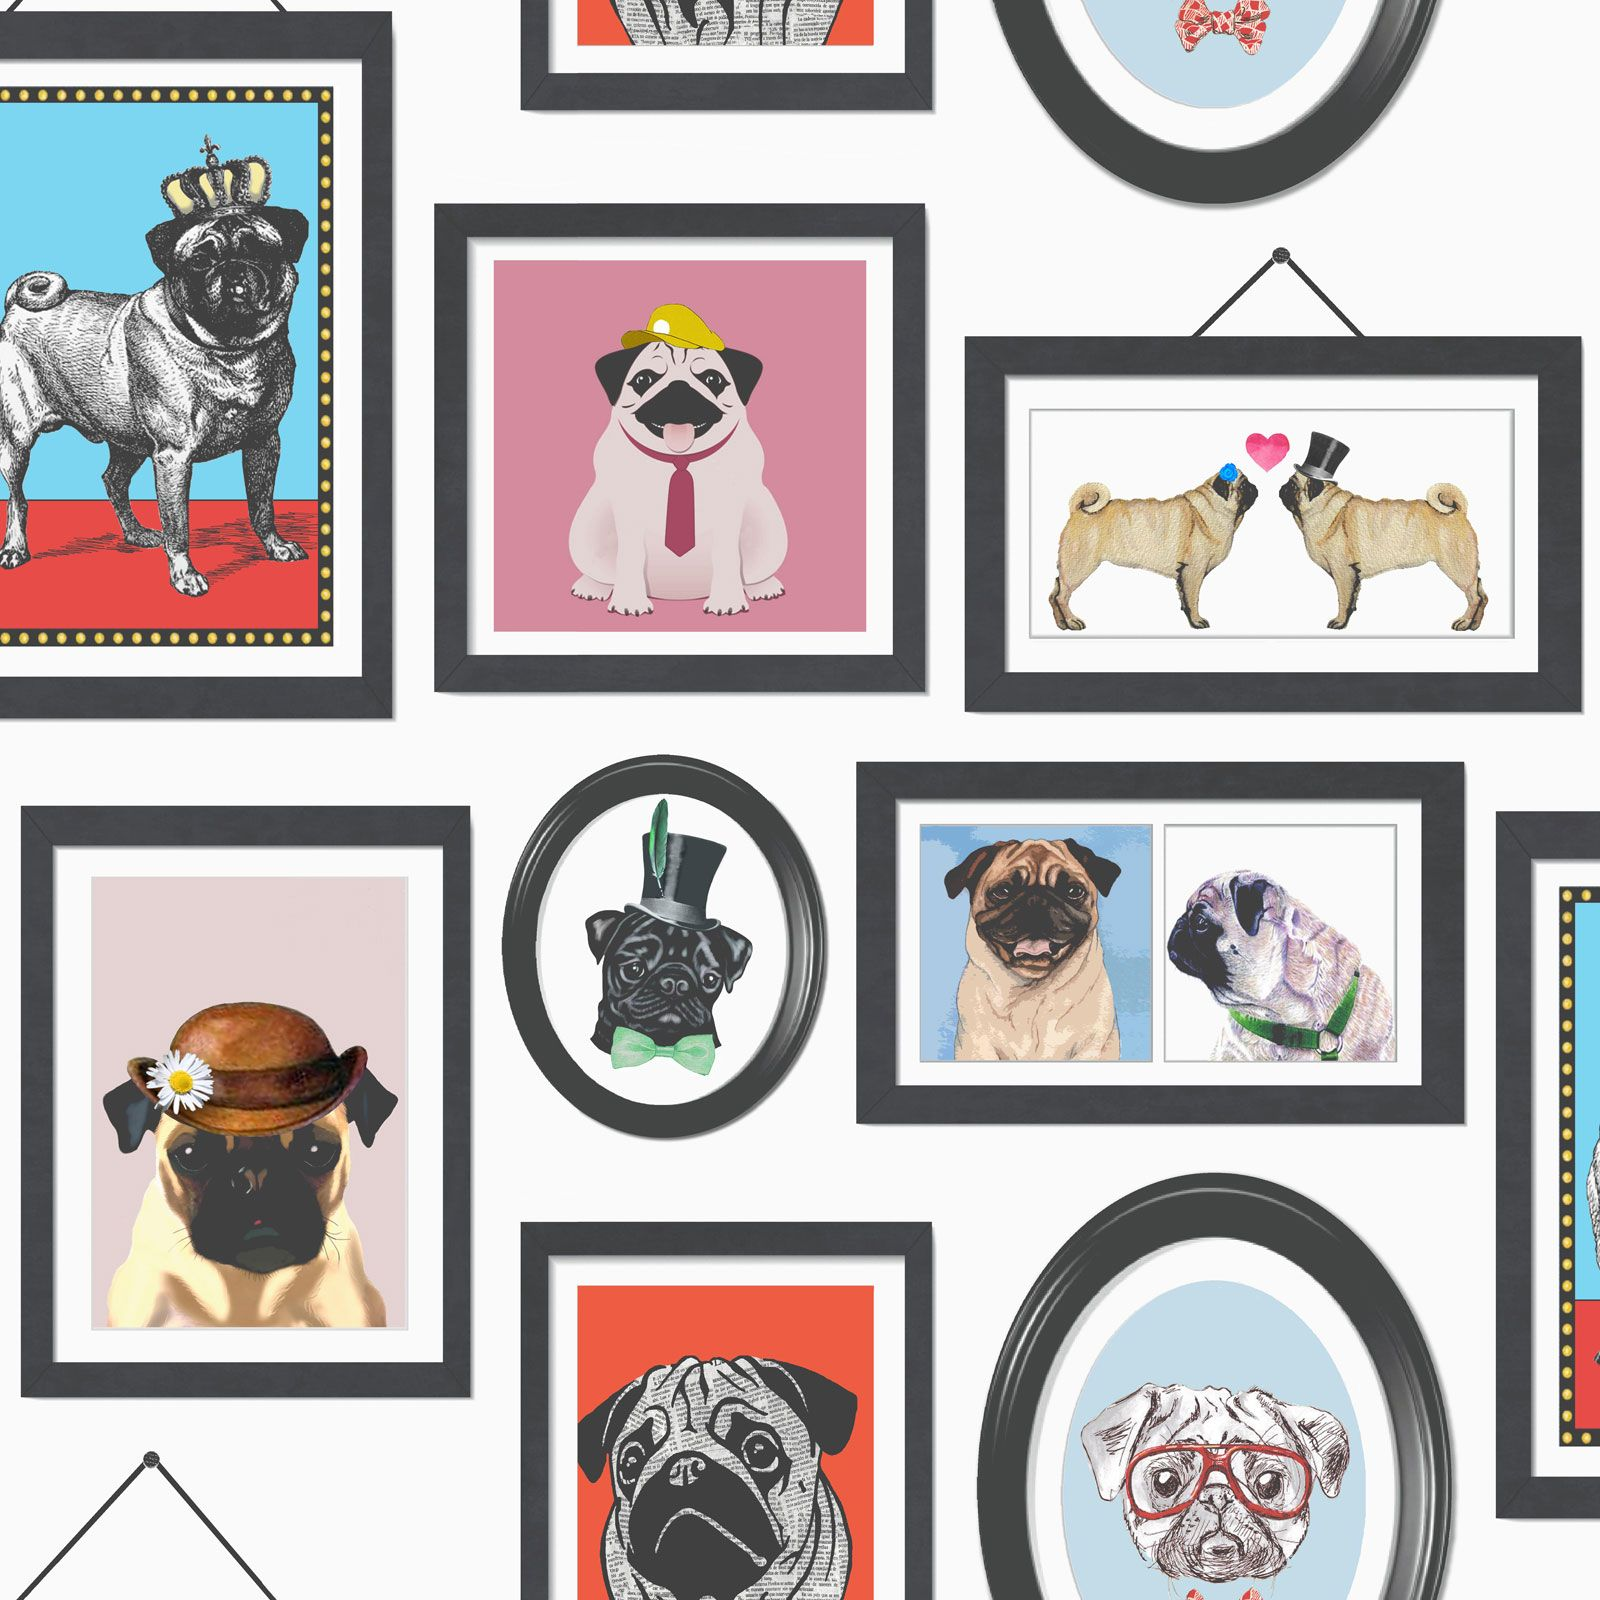 A PUG'S LIFE PUG DOG WALLPAPER (11360) HOLDEN DECOR NEW